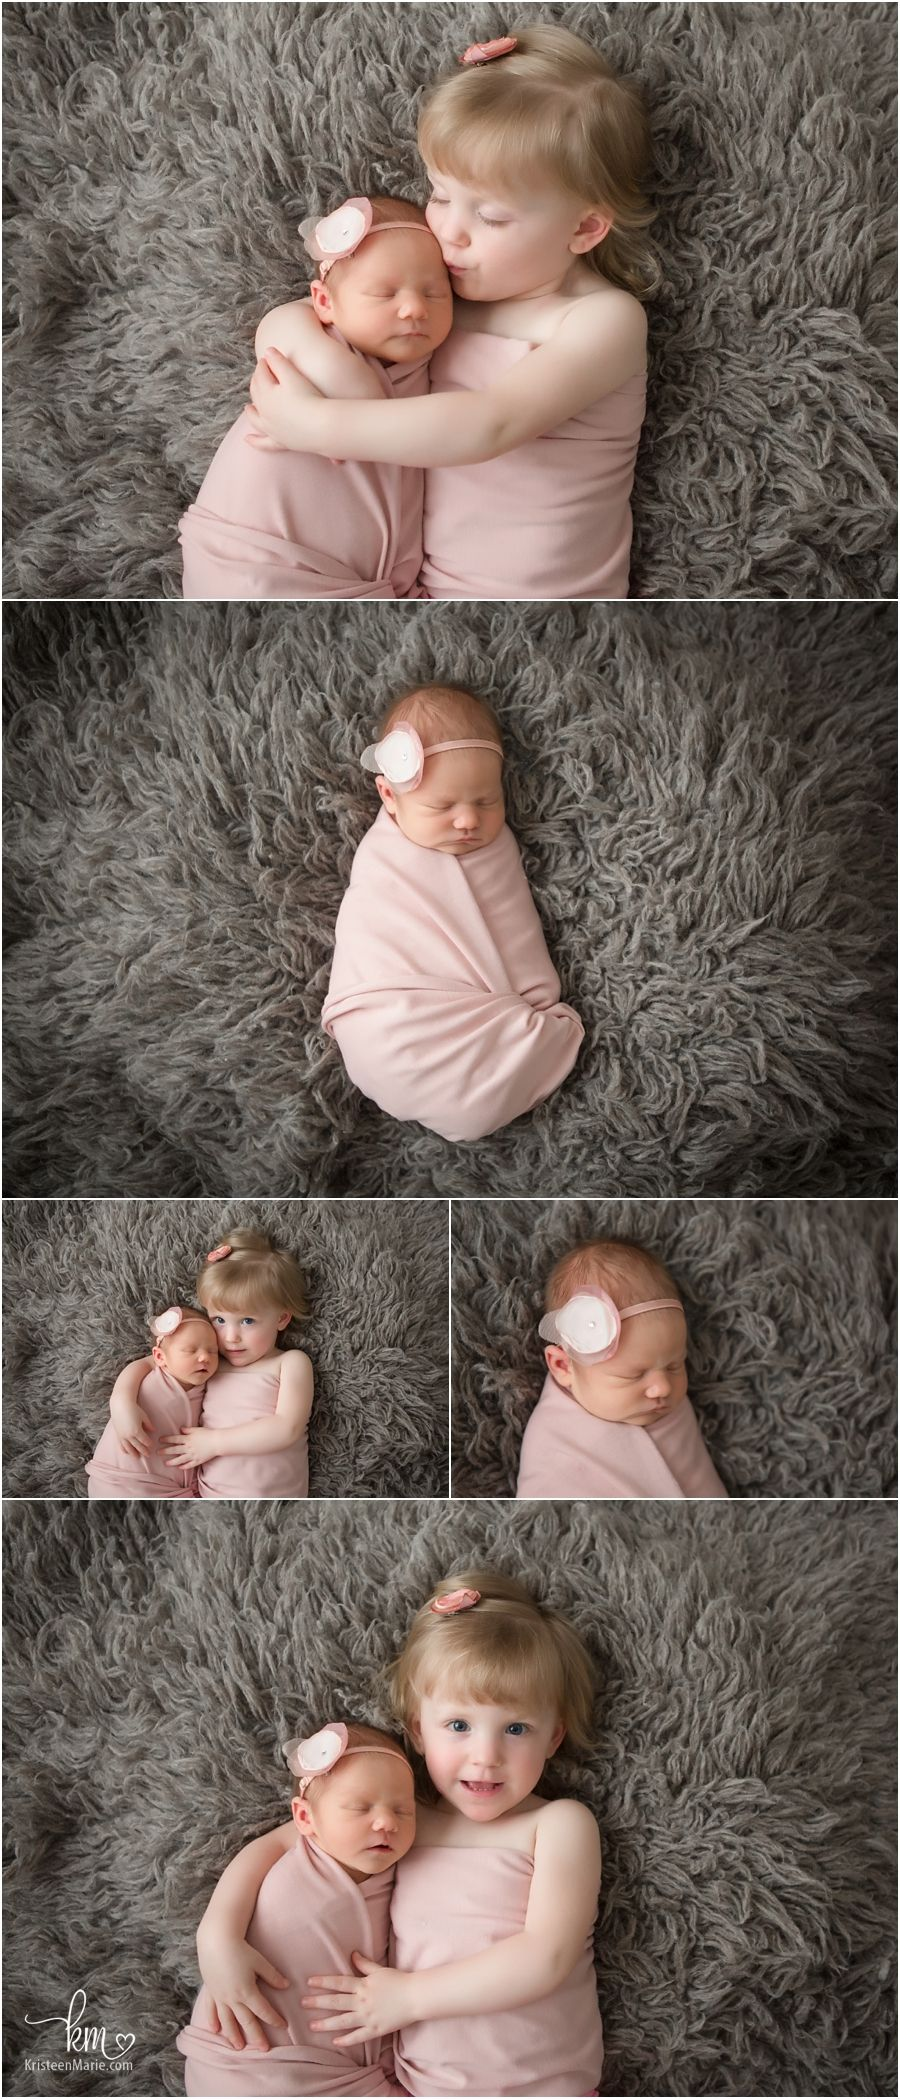 Poses for newborn girl and sister siblings newborn photography poses